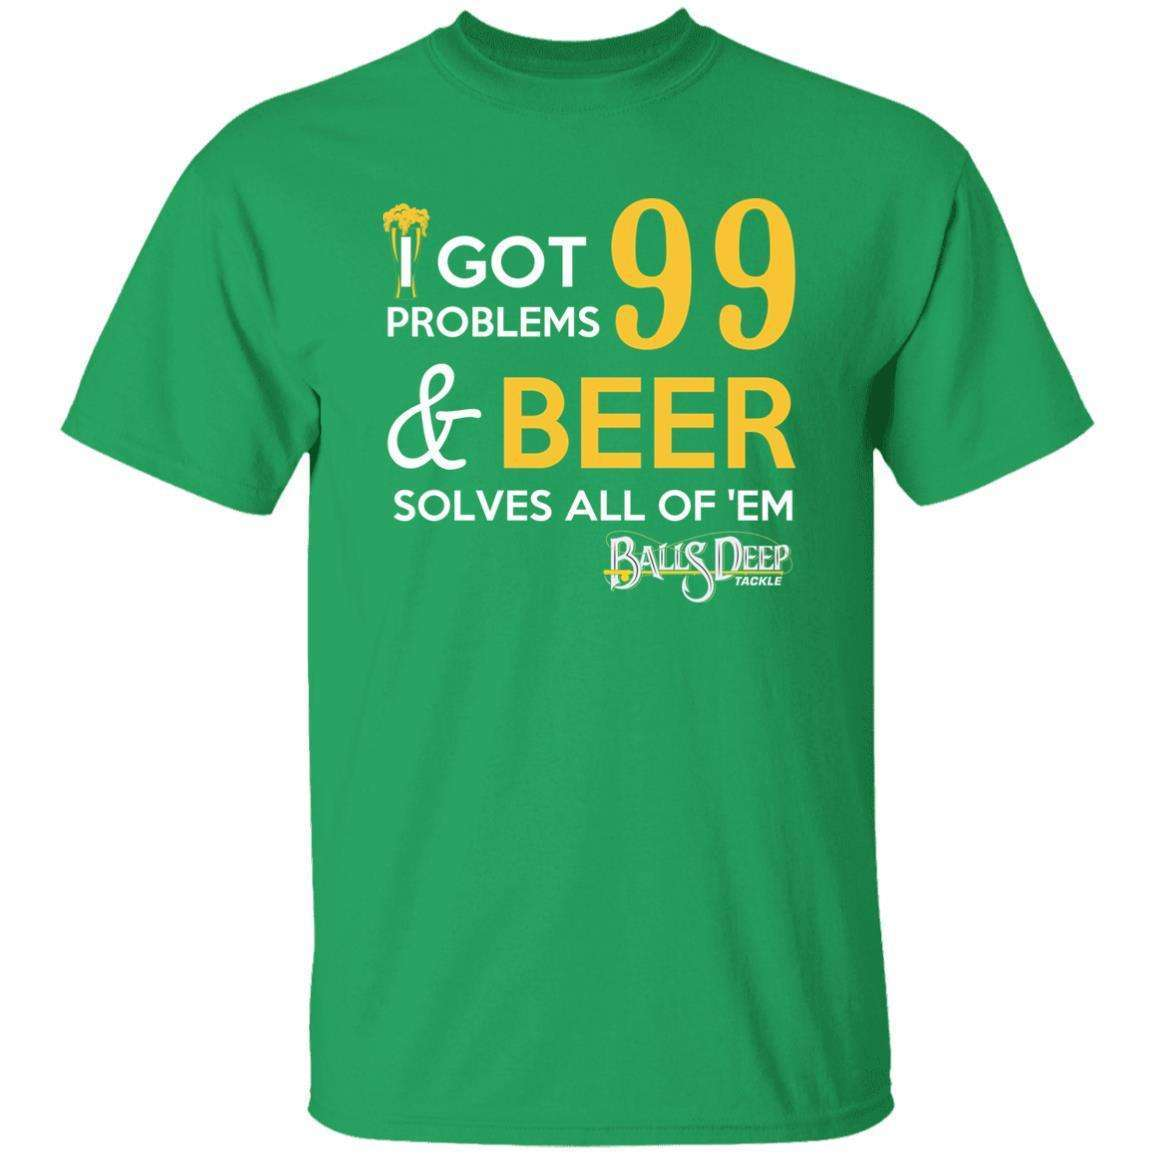 99 Problems and Beer Solves All Of Them